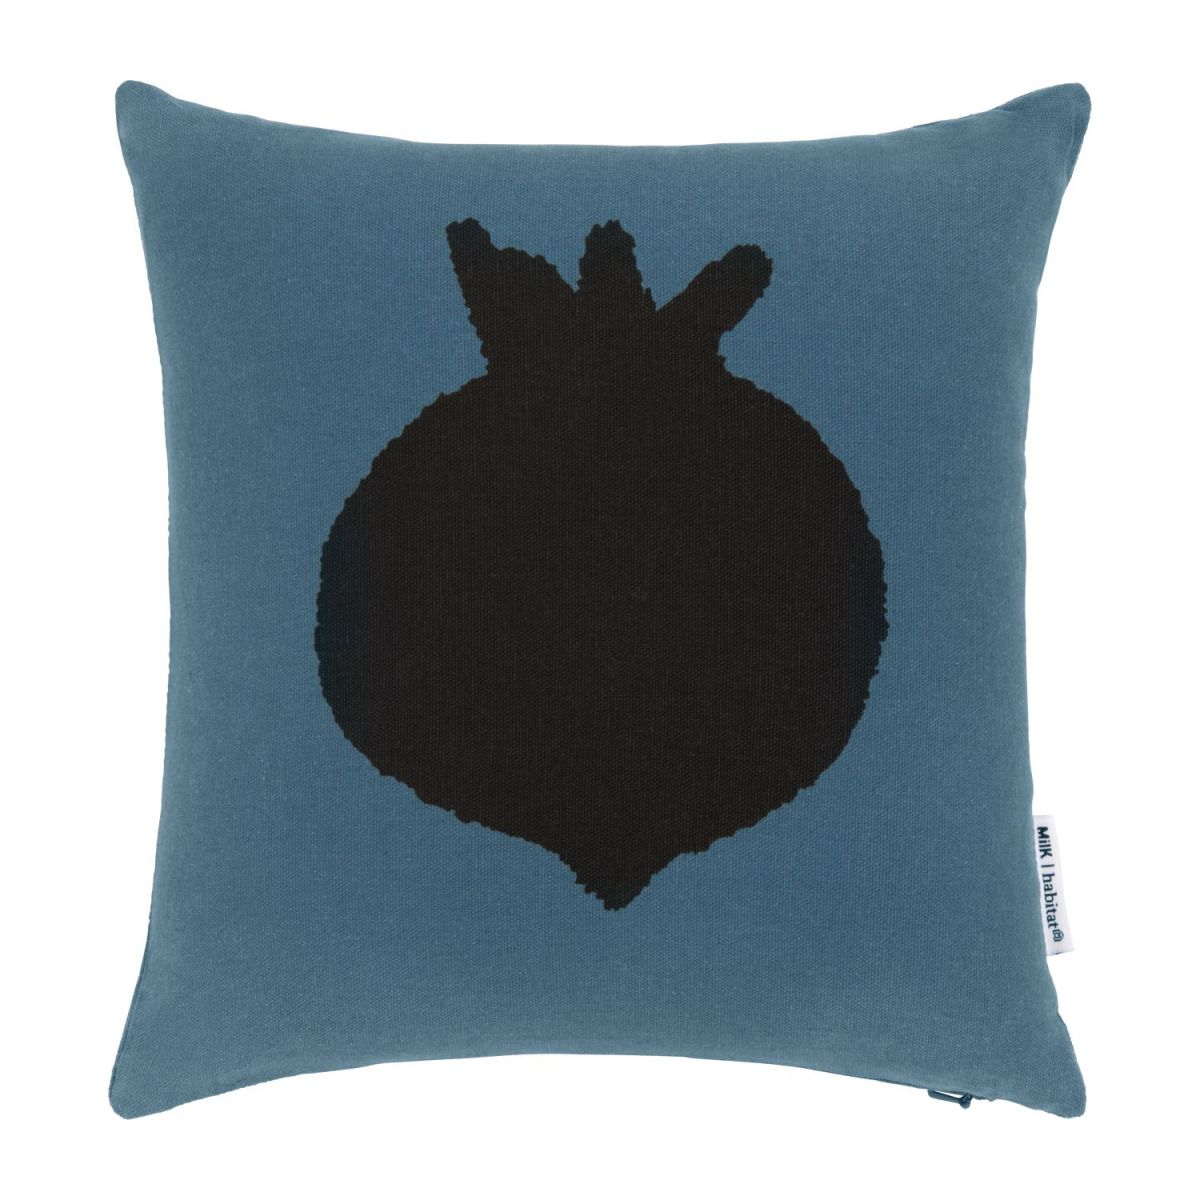 Cushion made of cotton 30x30, blue with radish pattern n°1